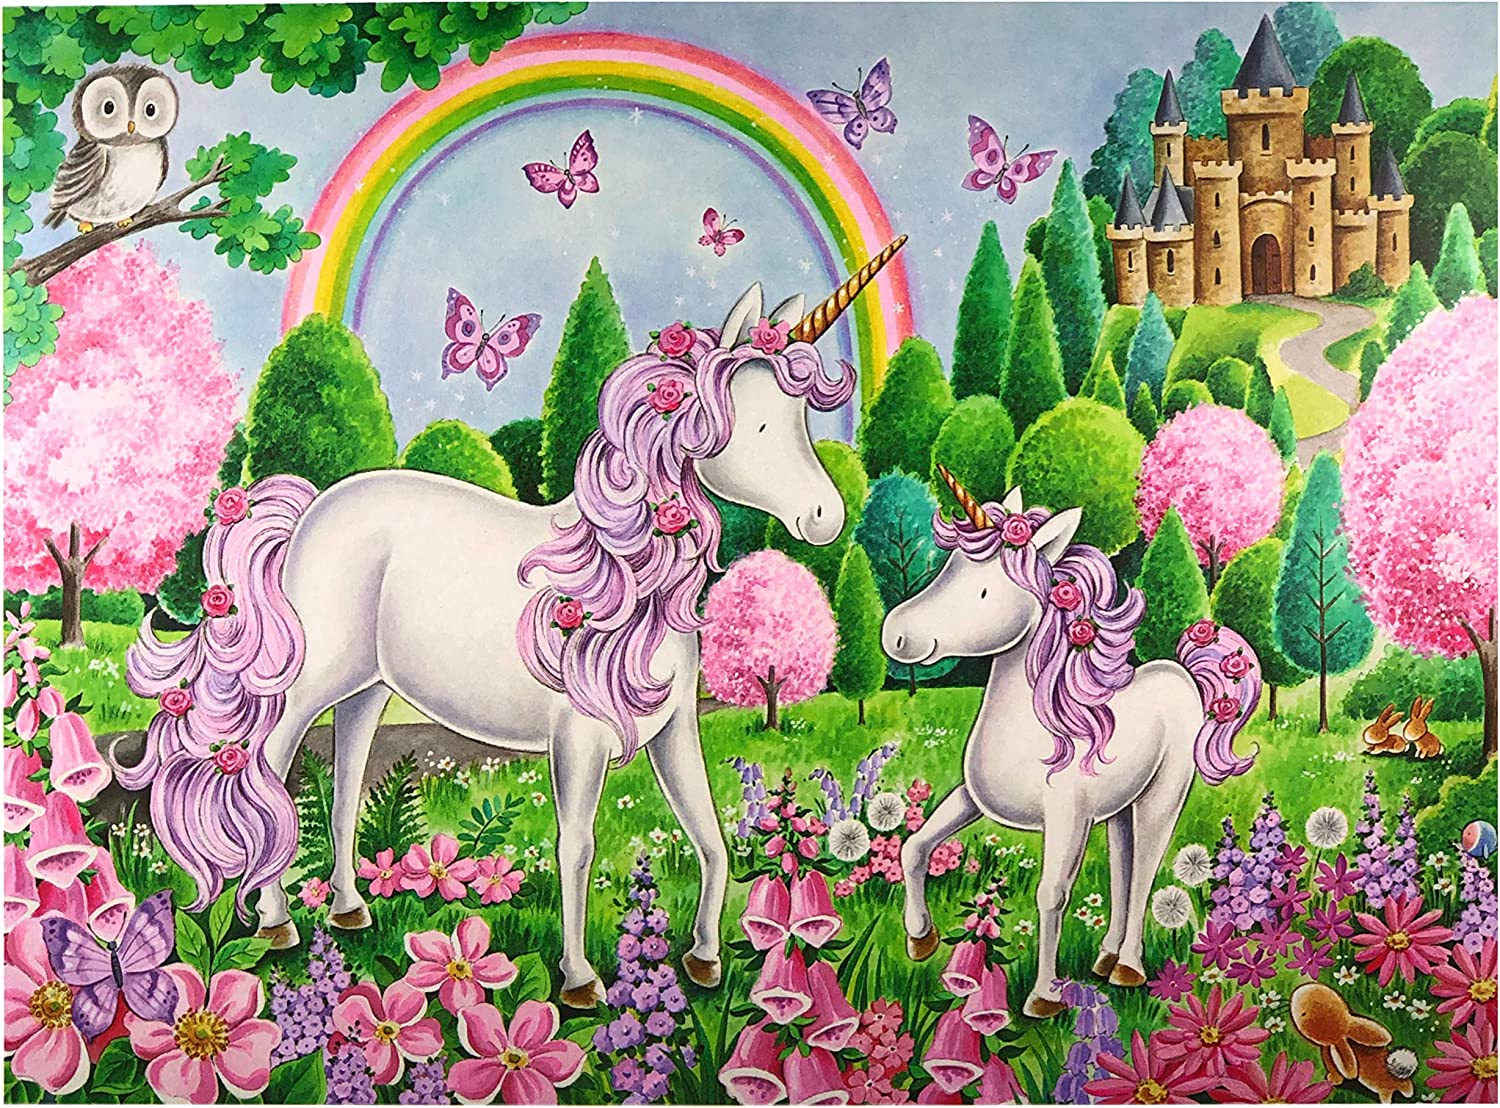 Teens and Kids Enchanted Unicorns Games for Adults Page Publications Collection Jigsaw Puzzles 100 Pieces for Adults